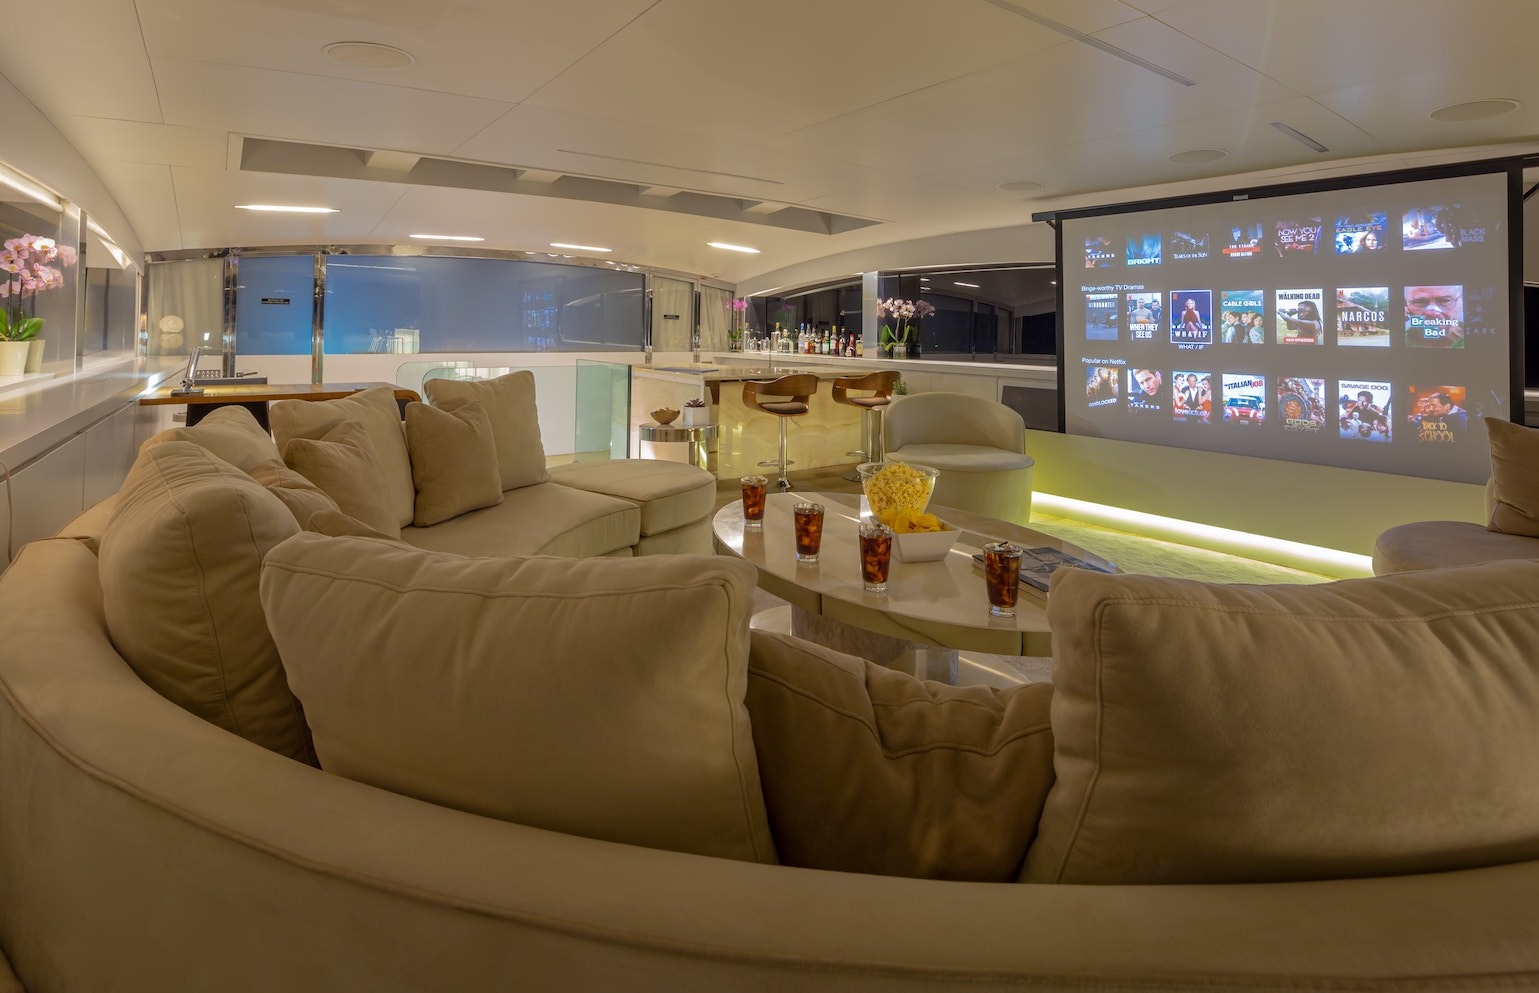 HD projector on the upper saloon perfect for movie nights